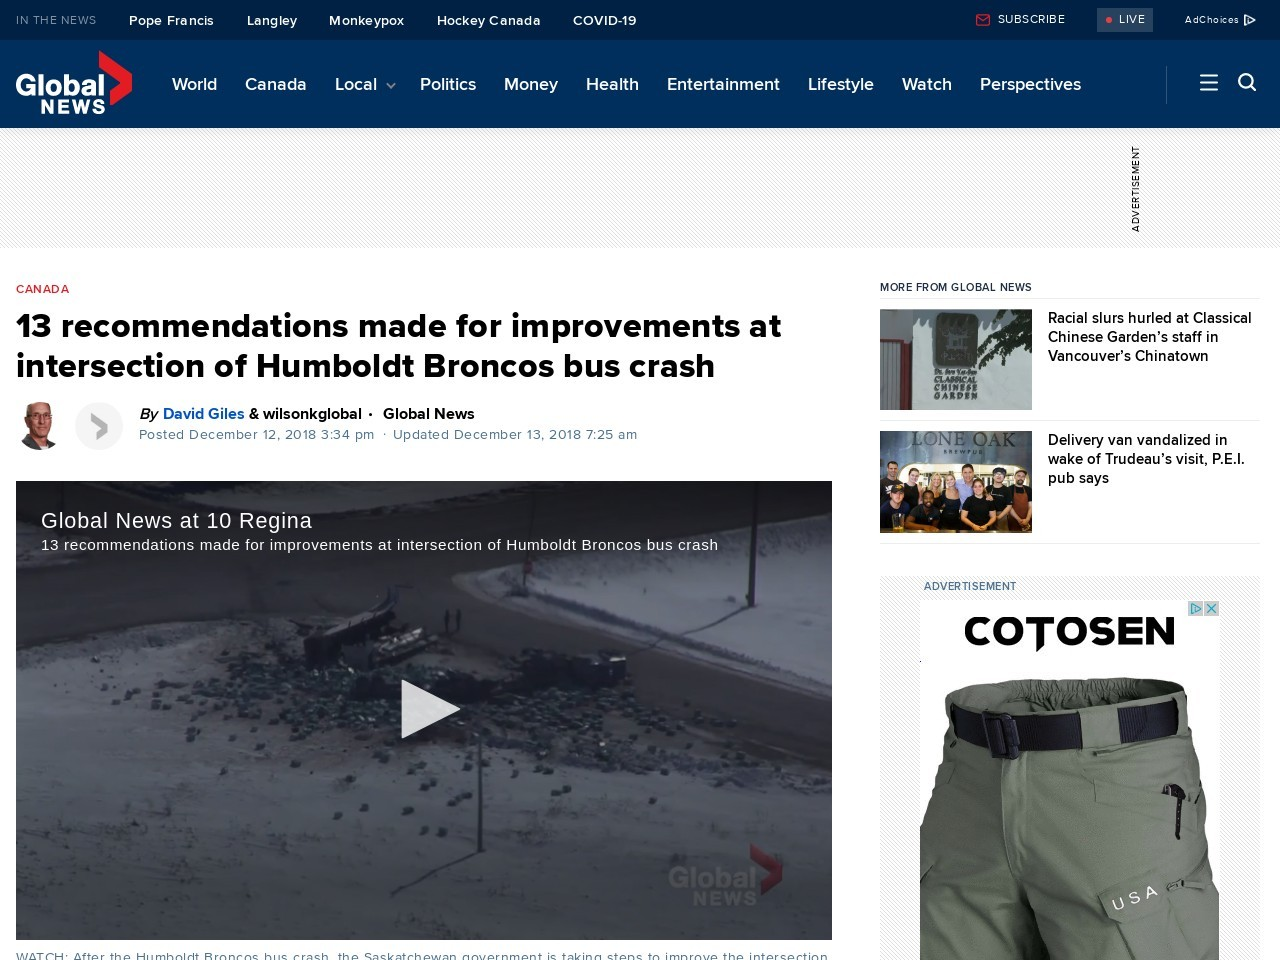 13 recommendations made for improvements at intersection of Humboldt Broncos bus crash